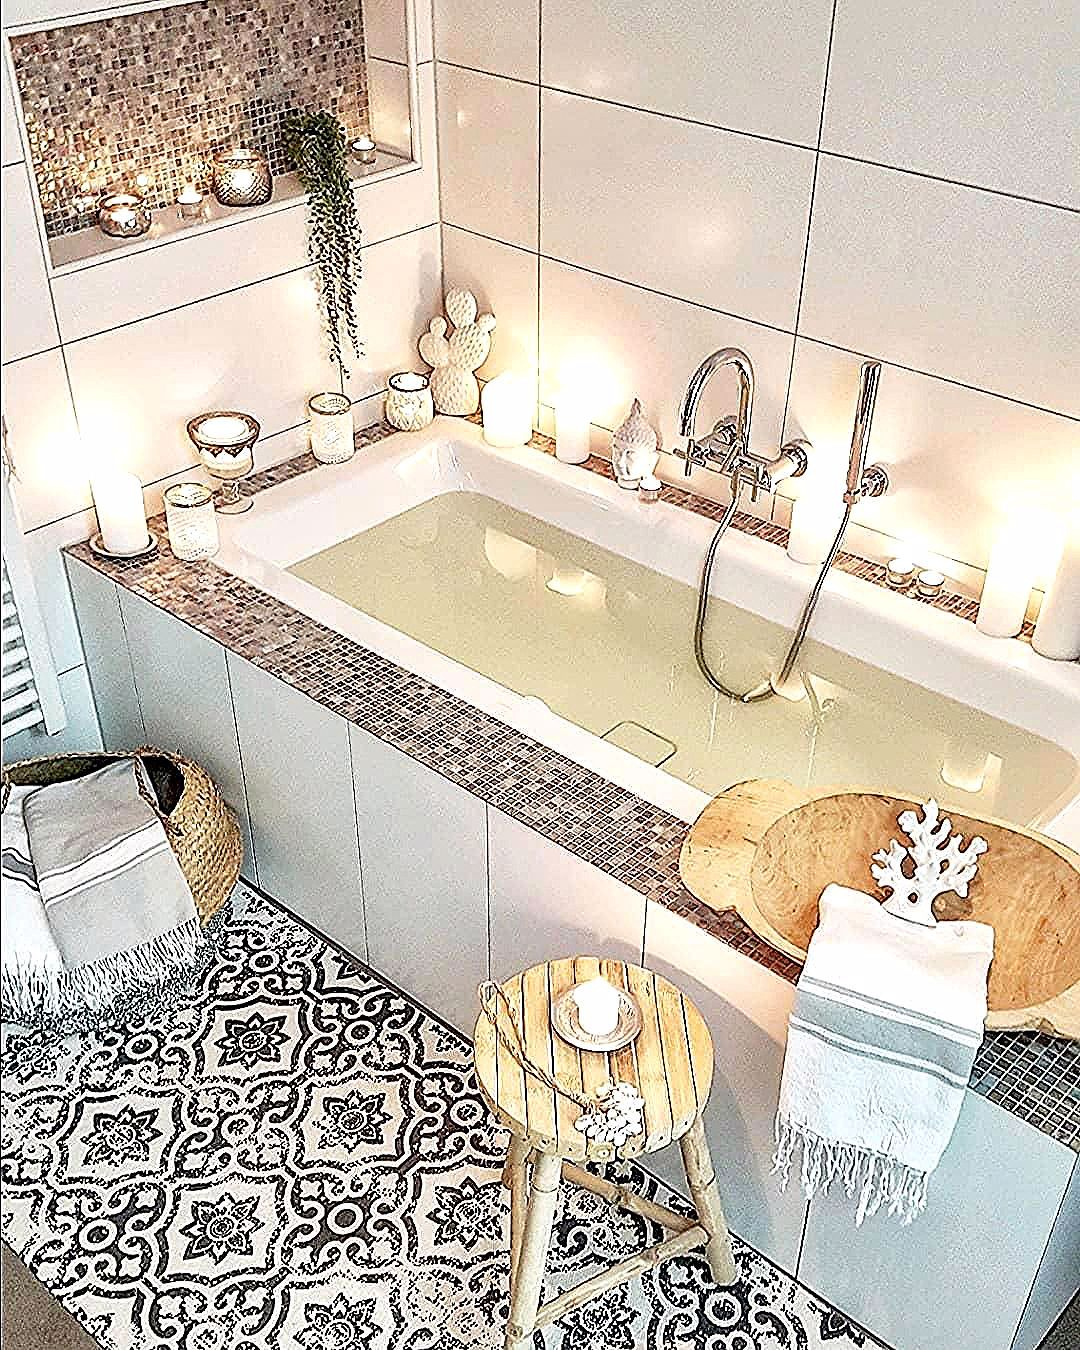 Home Spa In 2020 With Images Bathroom Design Bathroom Model